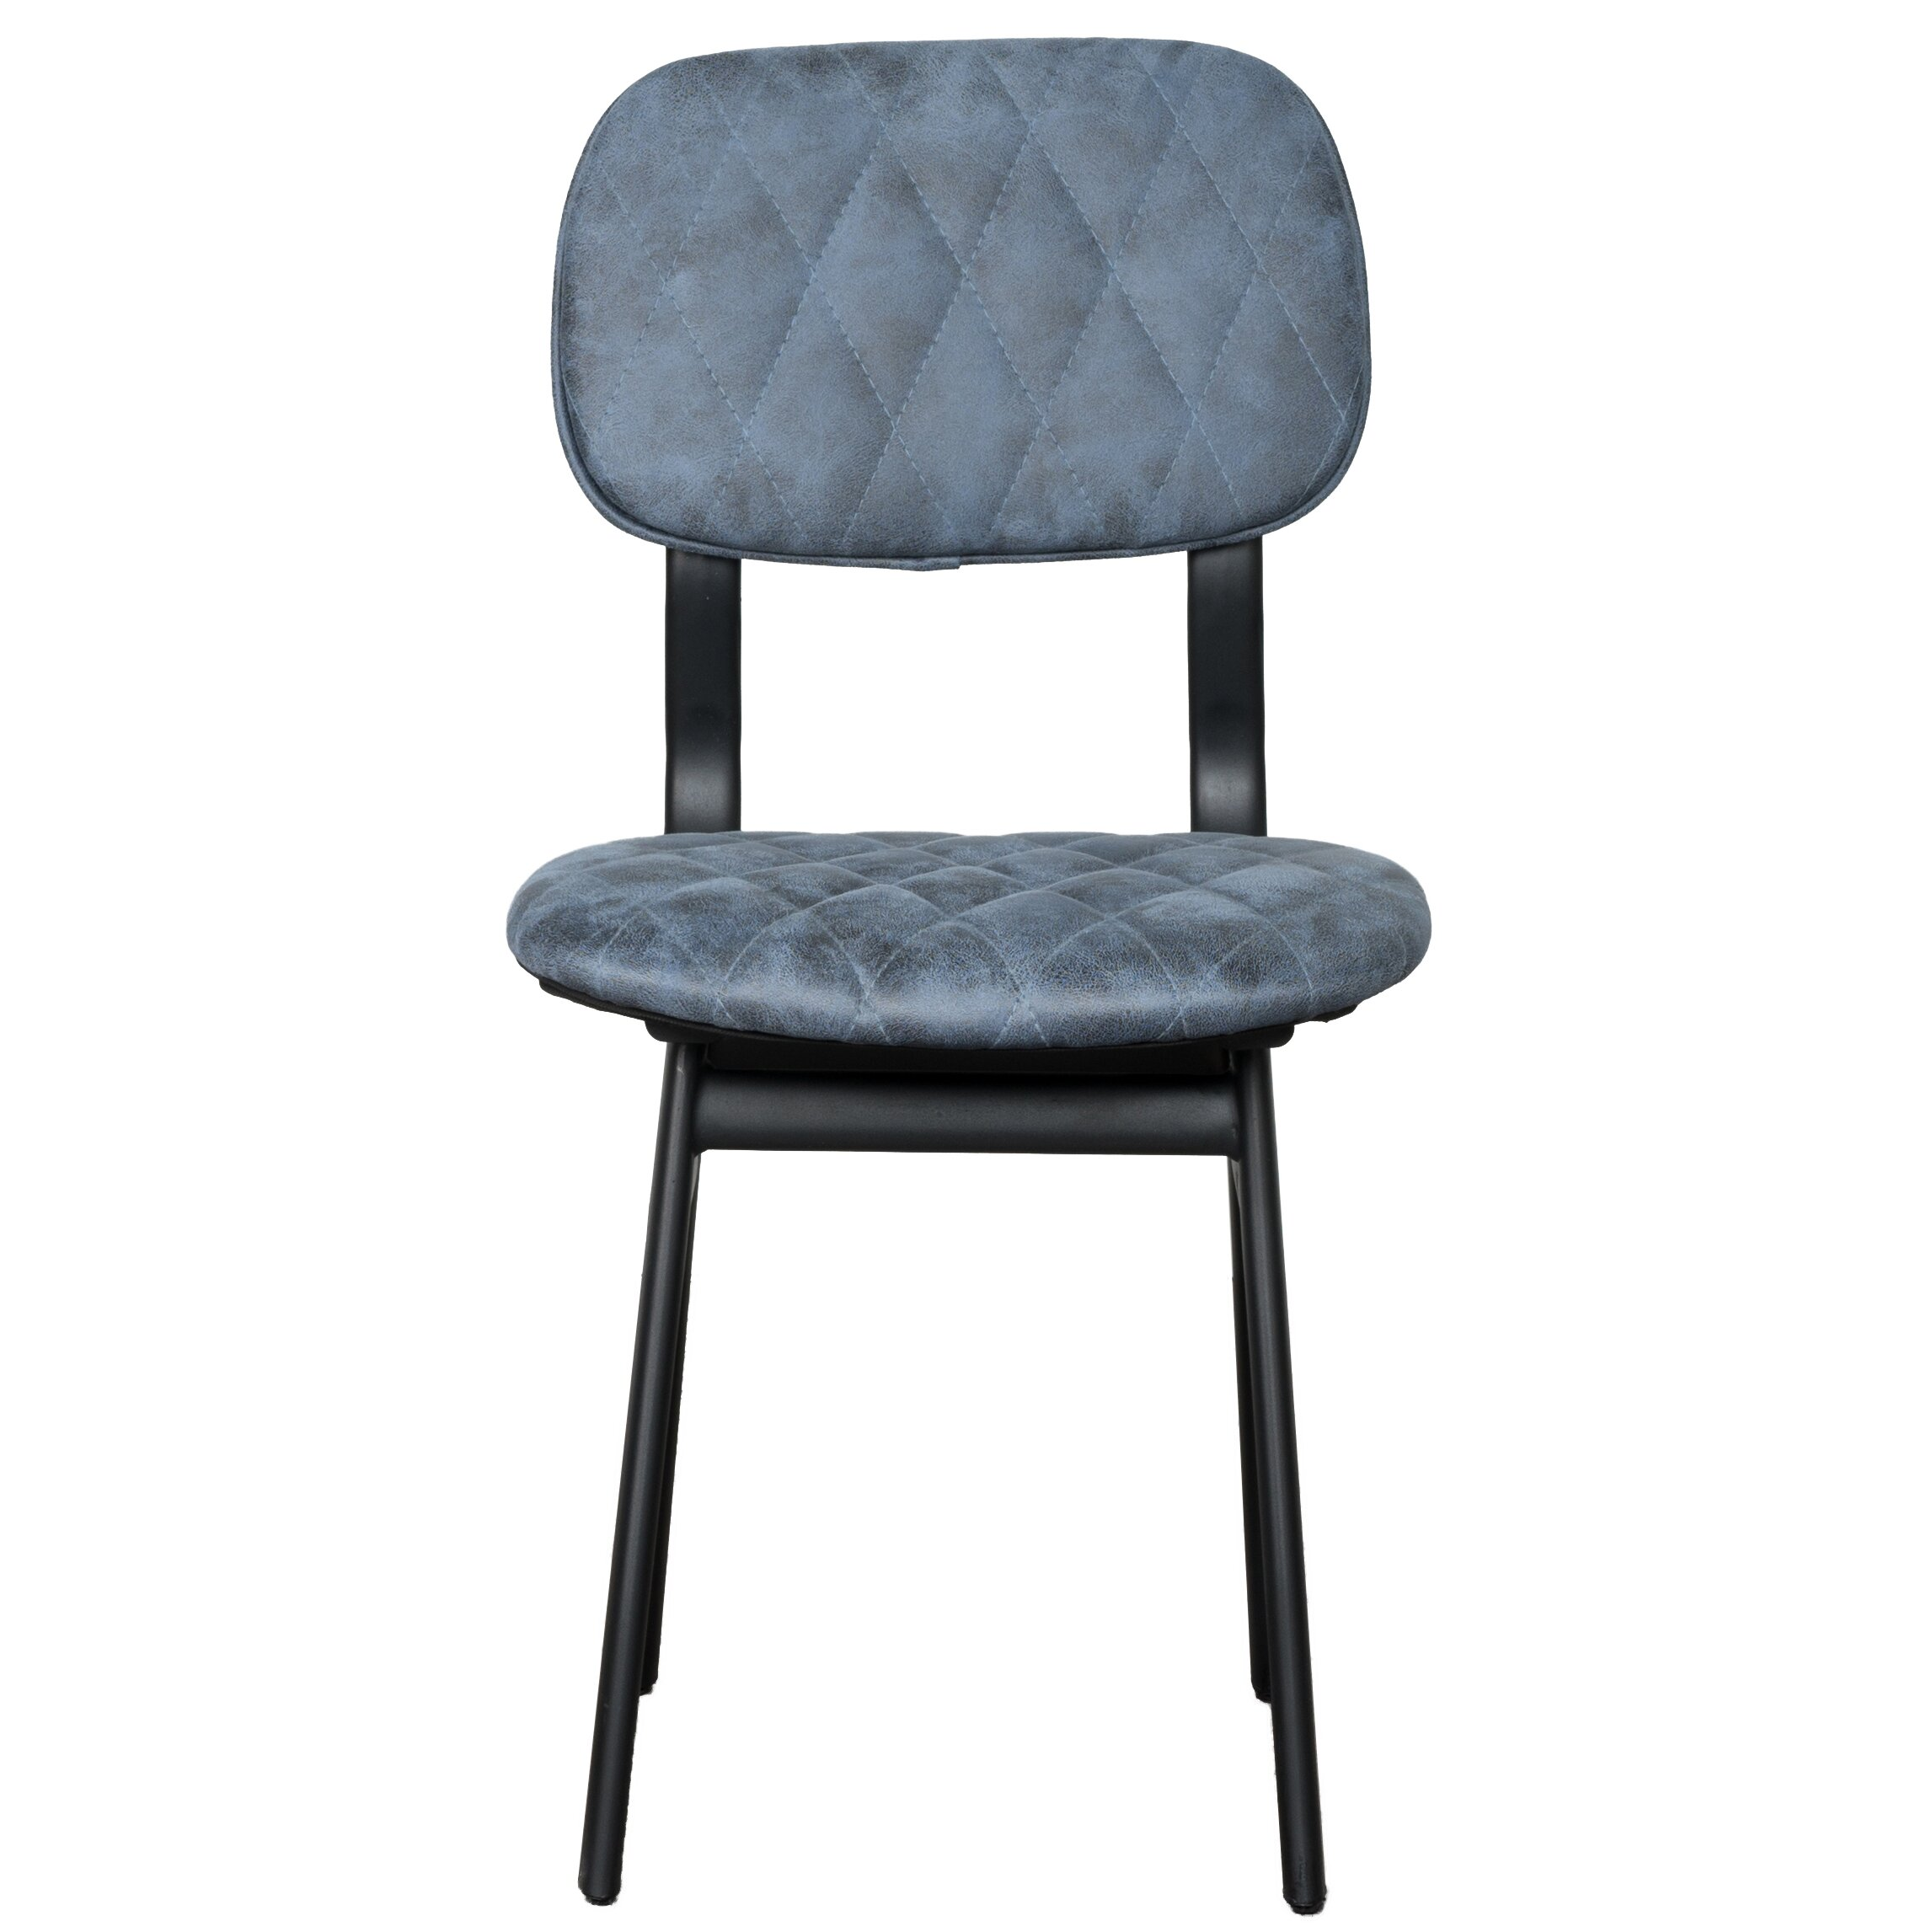 Laurel foundry modern farmhouse newnan side chair wayfair for Modern farmhouse dining chairs